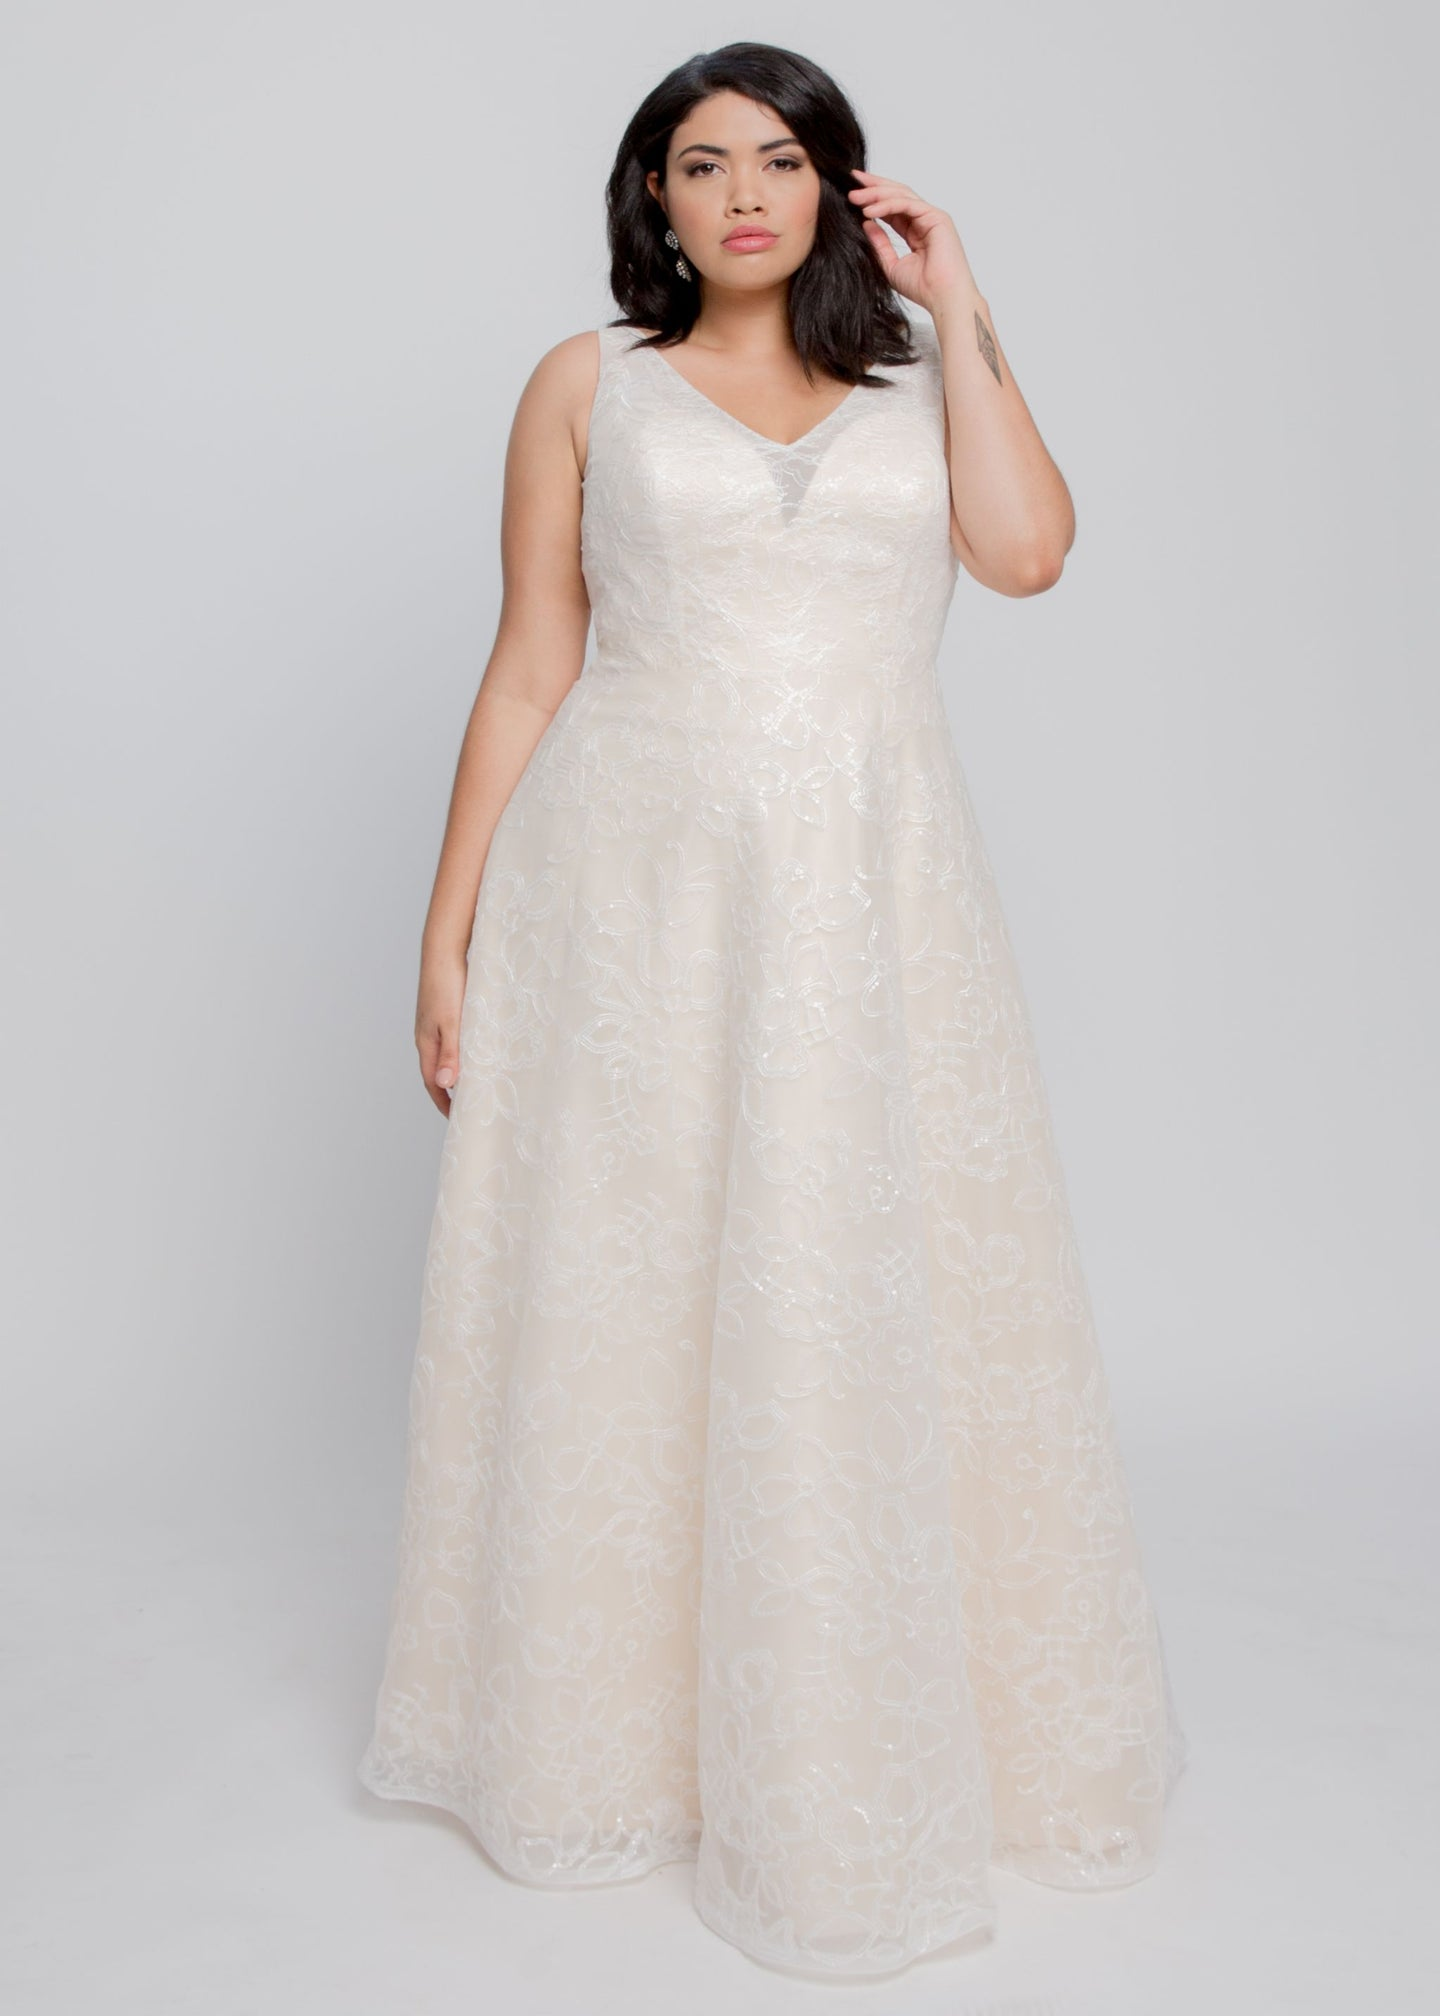 Gorgeous bridal gowns for all body shapes: plus size, curvy, or petite brides. Try on our wedding dresses at home. Size 0-30. Comfortable. Convenient. Fun. Lace or satin. Mermaid or A-line. The Berkeley gown updates a classic shape with wider straps showcasing a flattering V neckline and sweet A line skirt. Champagne lining with beaded, floral fabric adds something special to an elegant gown that will flatter many different silhouettes.